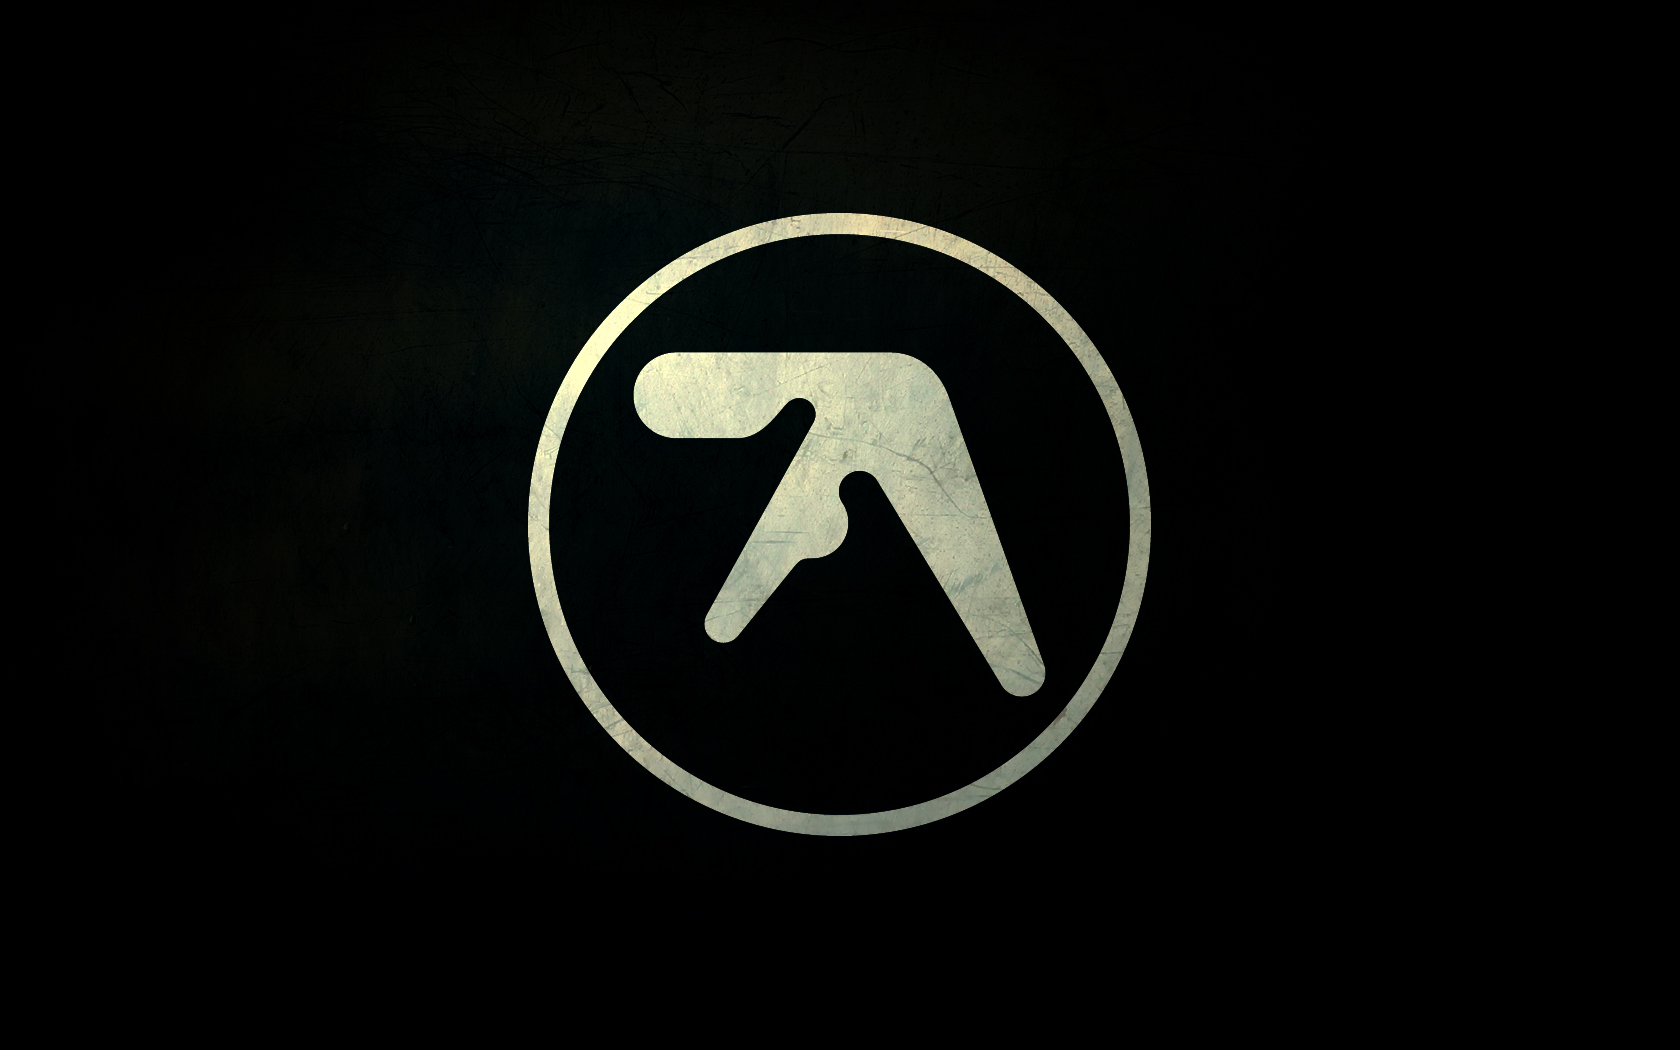 Aphex Twin is up for a Grammy